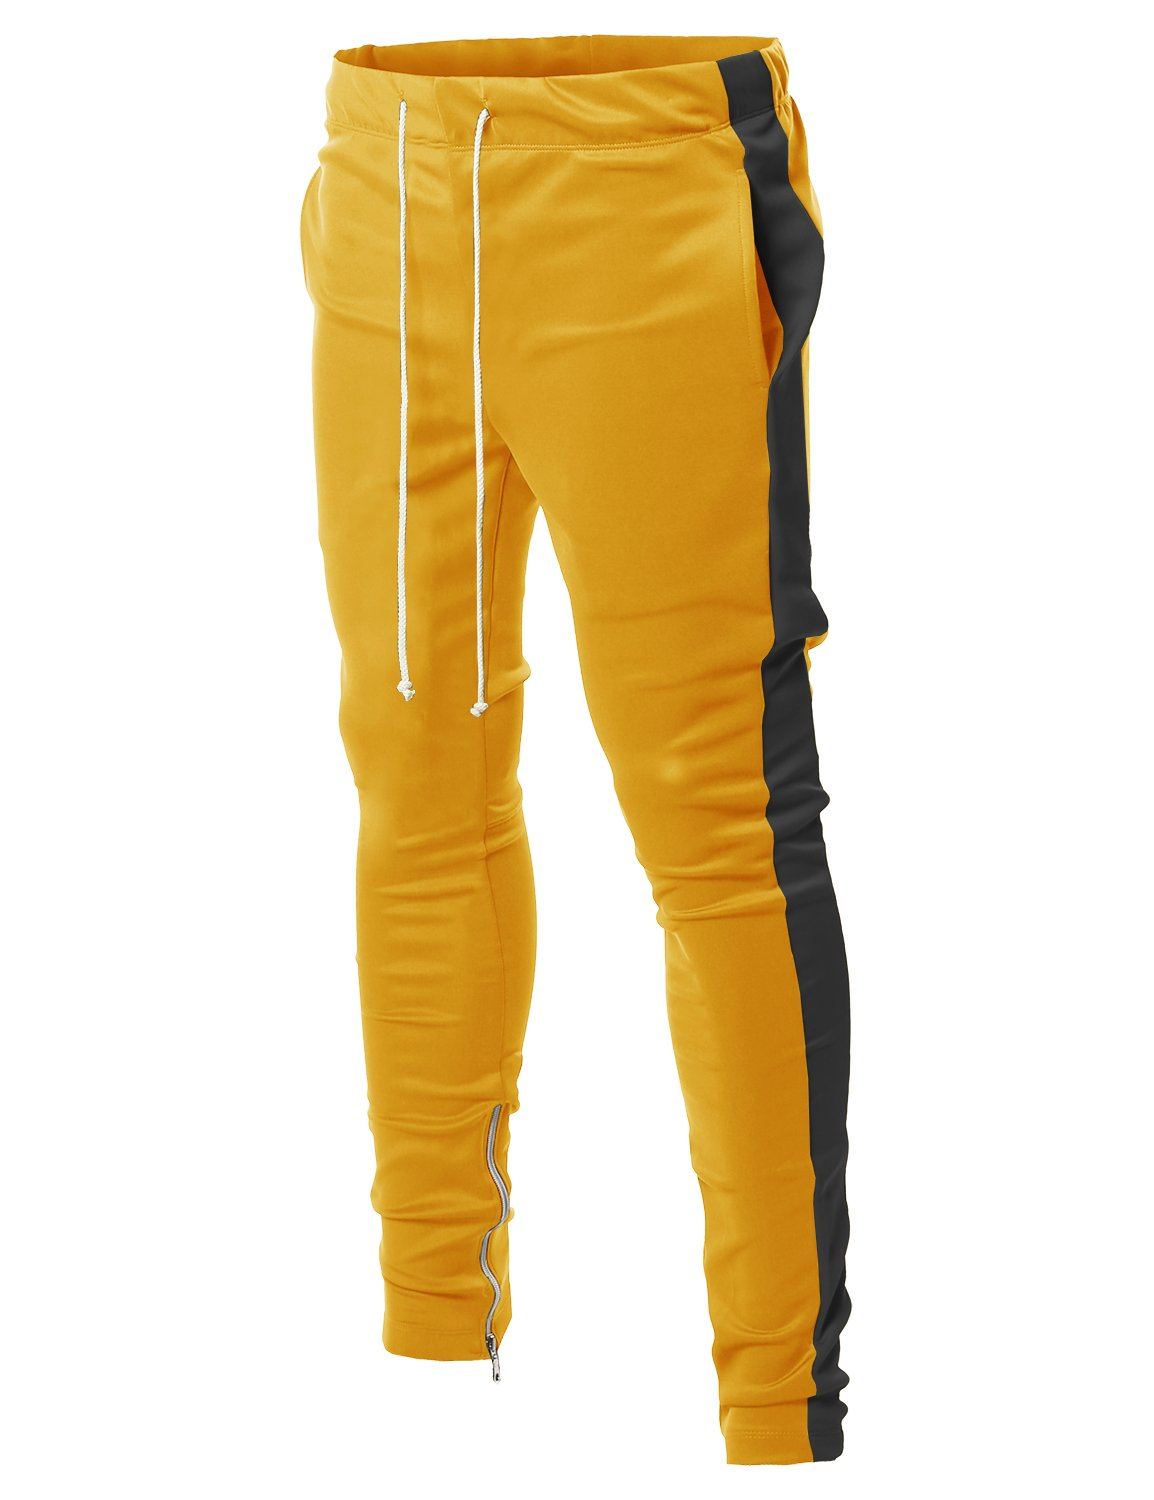 Style by William PANTS メンズ B07B8SXHDS Large|Fsmptl0003 Yellow Black Fsmptl0003 Yellow Black Large